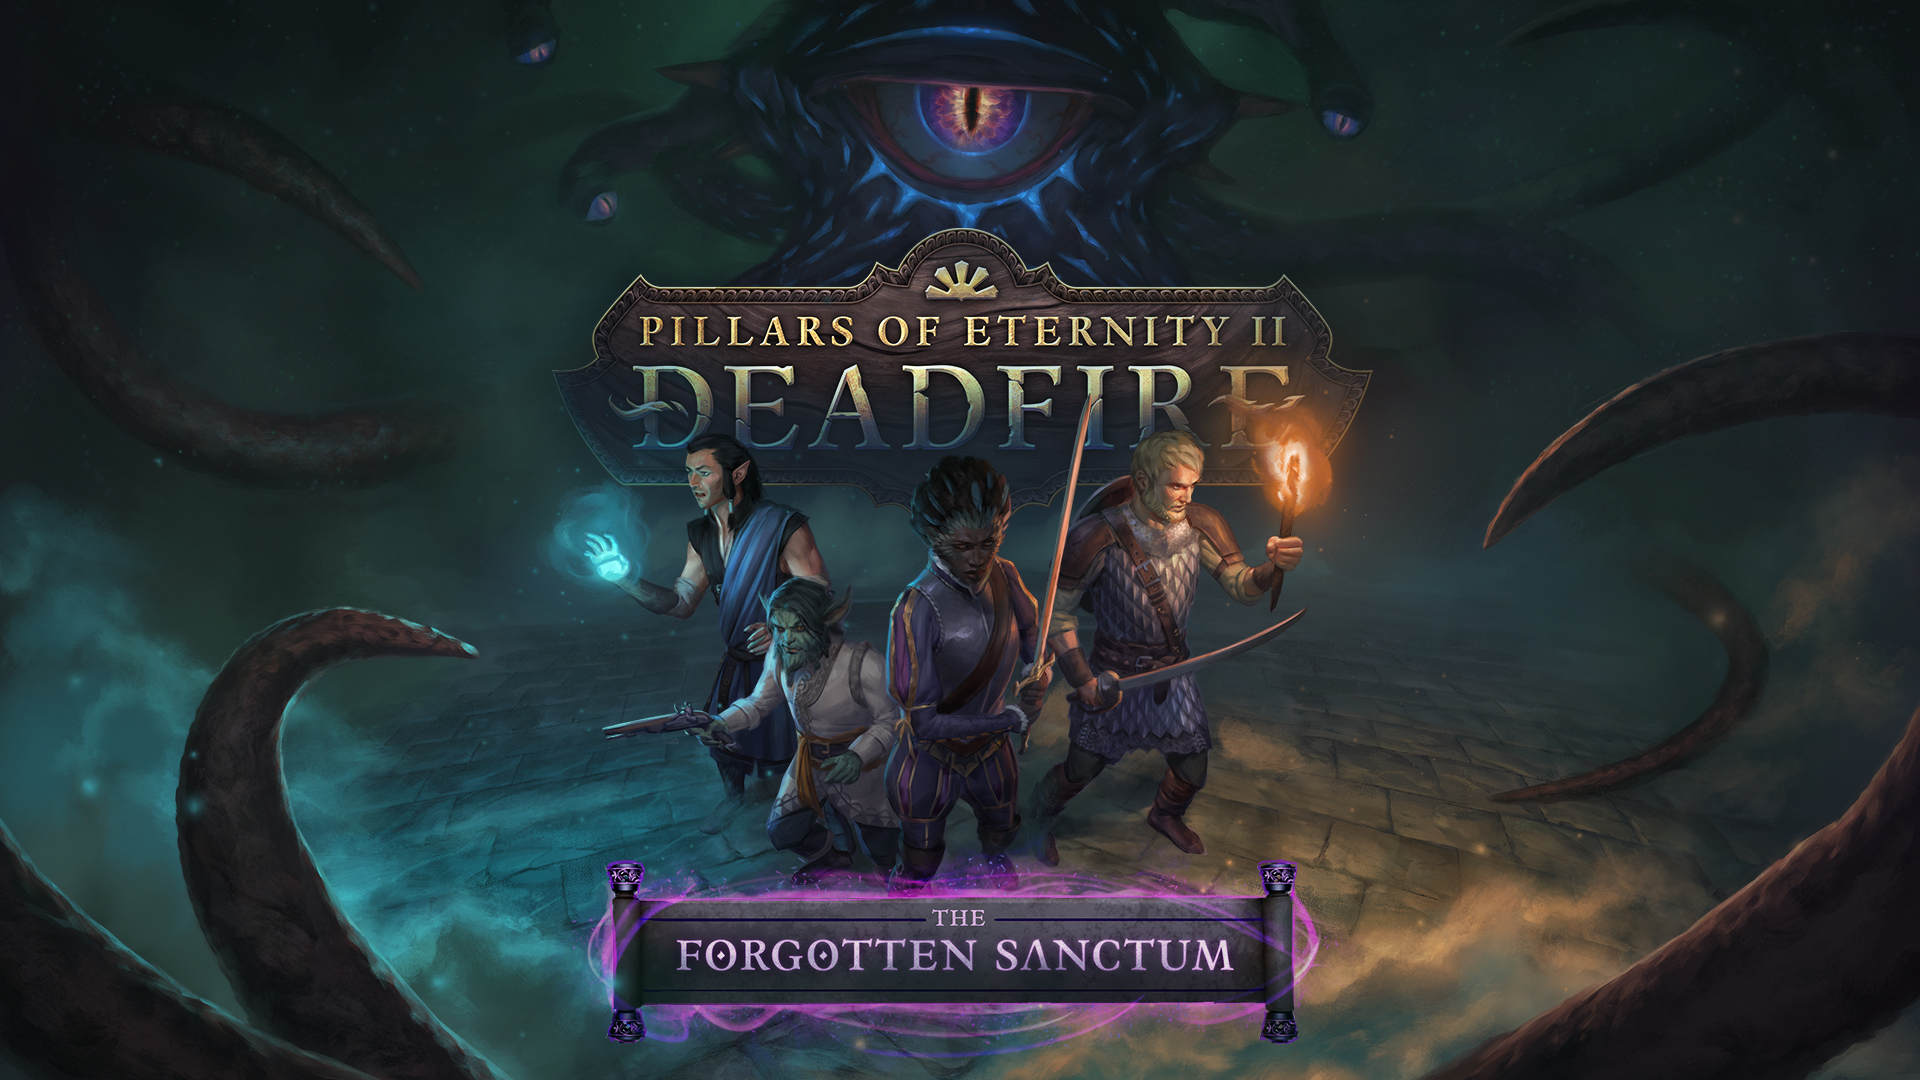 Pillars of Eternity II: Deadfire - The Forgotten Sanctum Torrent Download